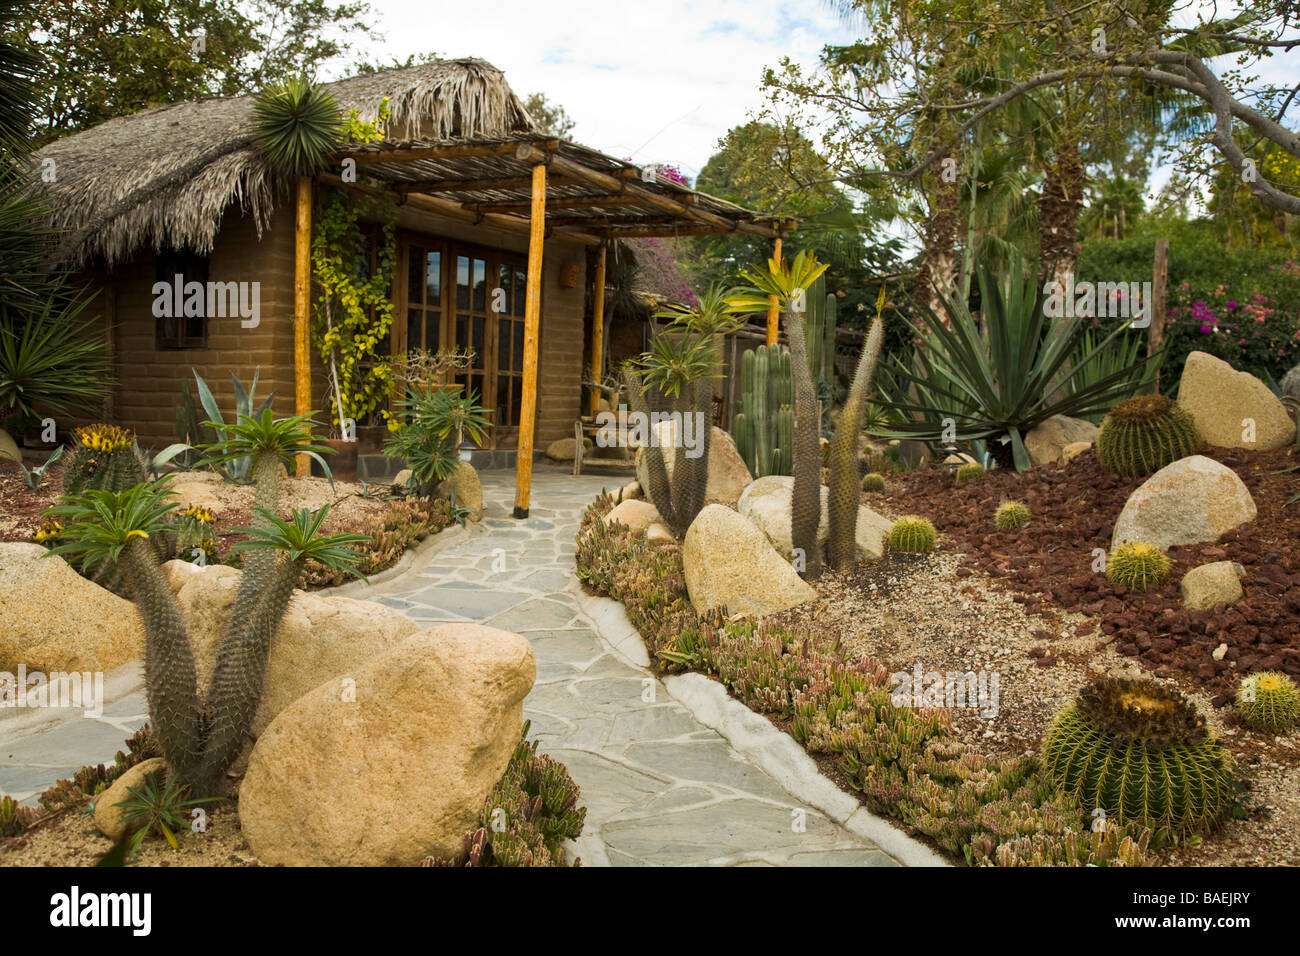 mexico todos santos los adobes restaurant and cactus garden serving upscale mexican food